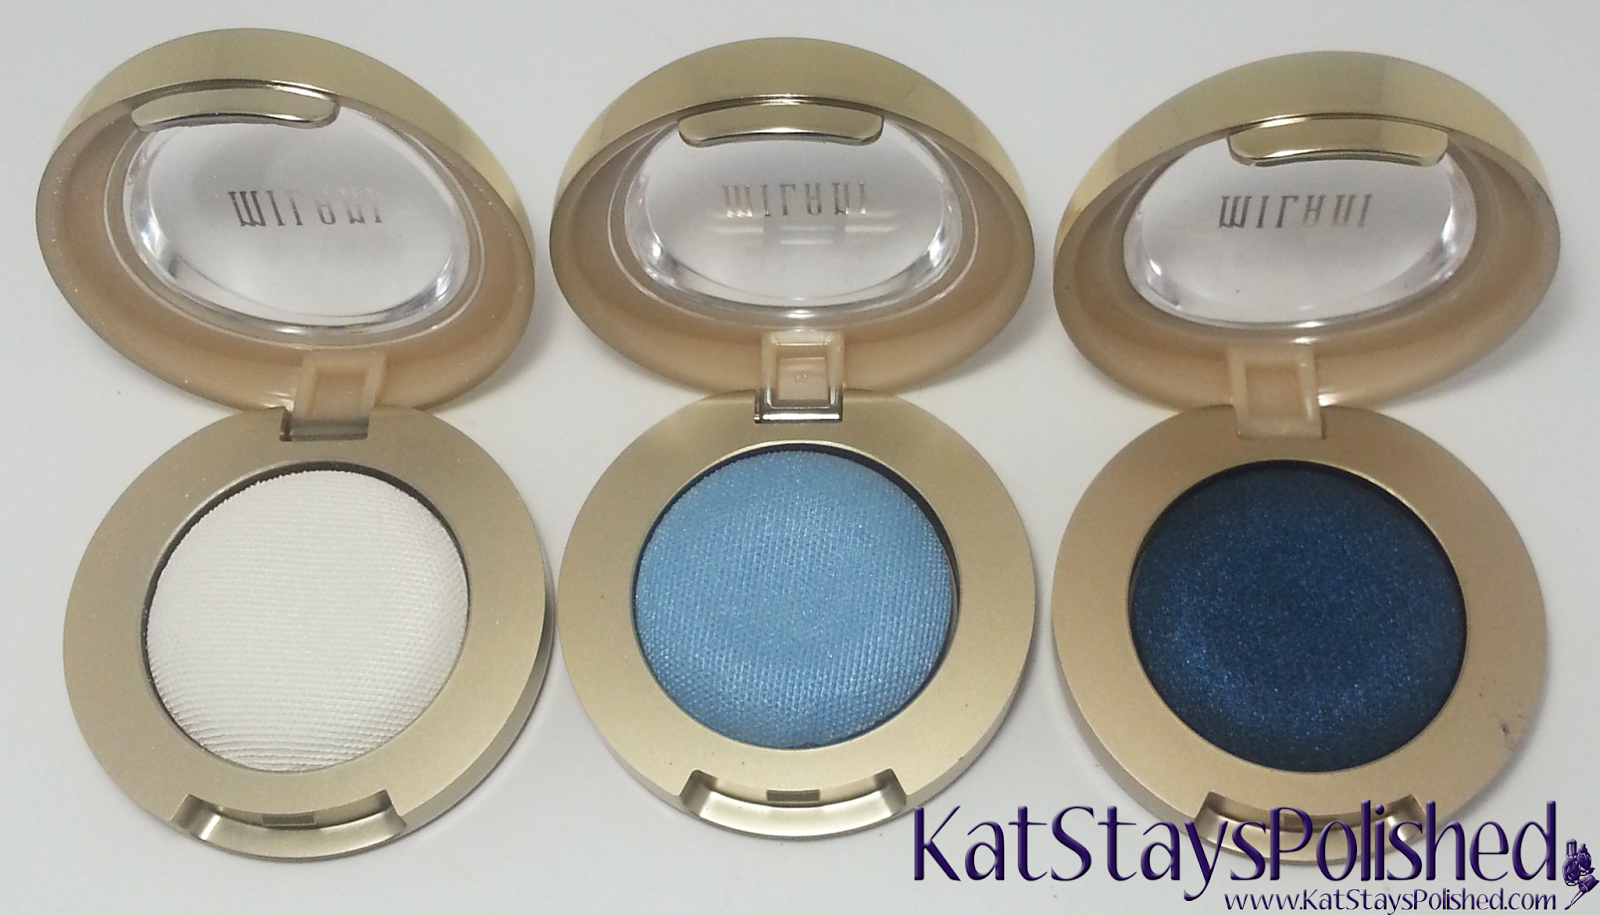 Milani Bella Eyes Gel Powder Eye Shadow - White - Sky - Navy | Kat Stays Polished